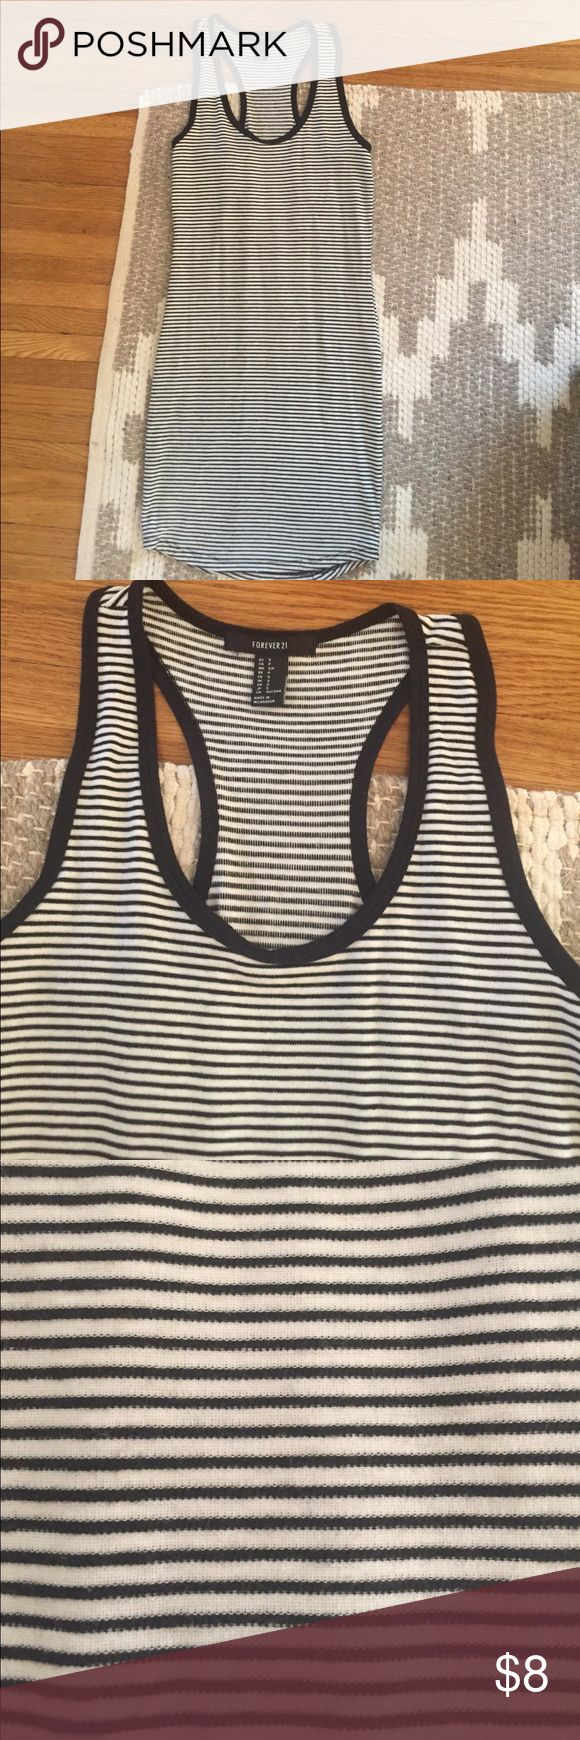 Forever 21 Black and White striped bodycon dress Fits snug to the body and drops above the knee with a racerback shape. This has been worn. Forever 21 Dresses Mini